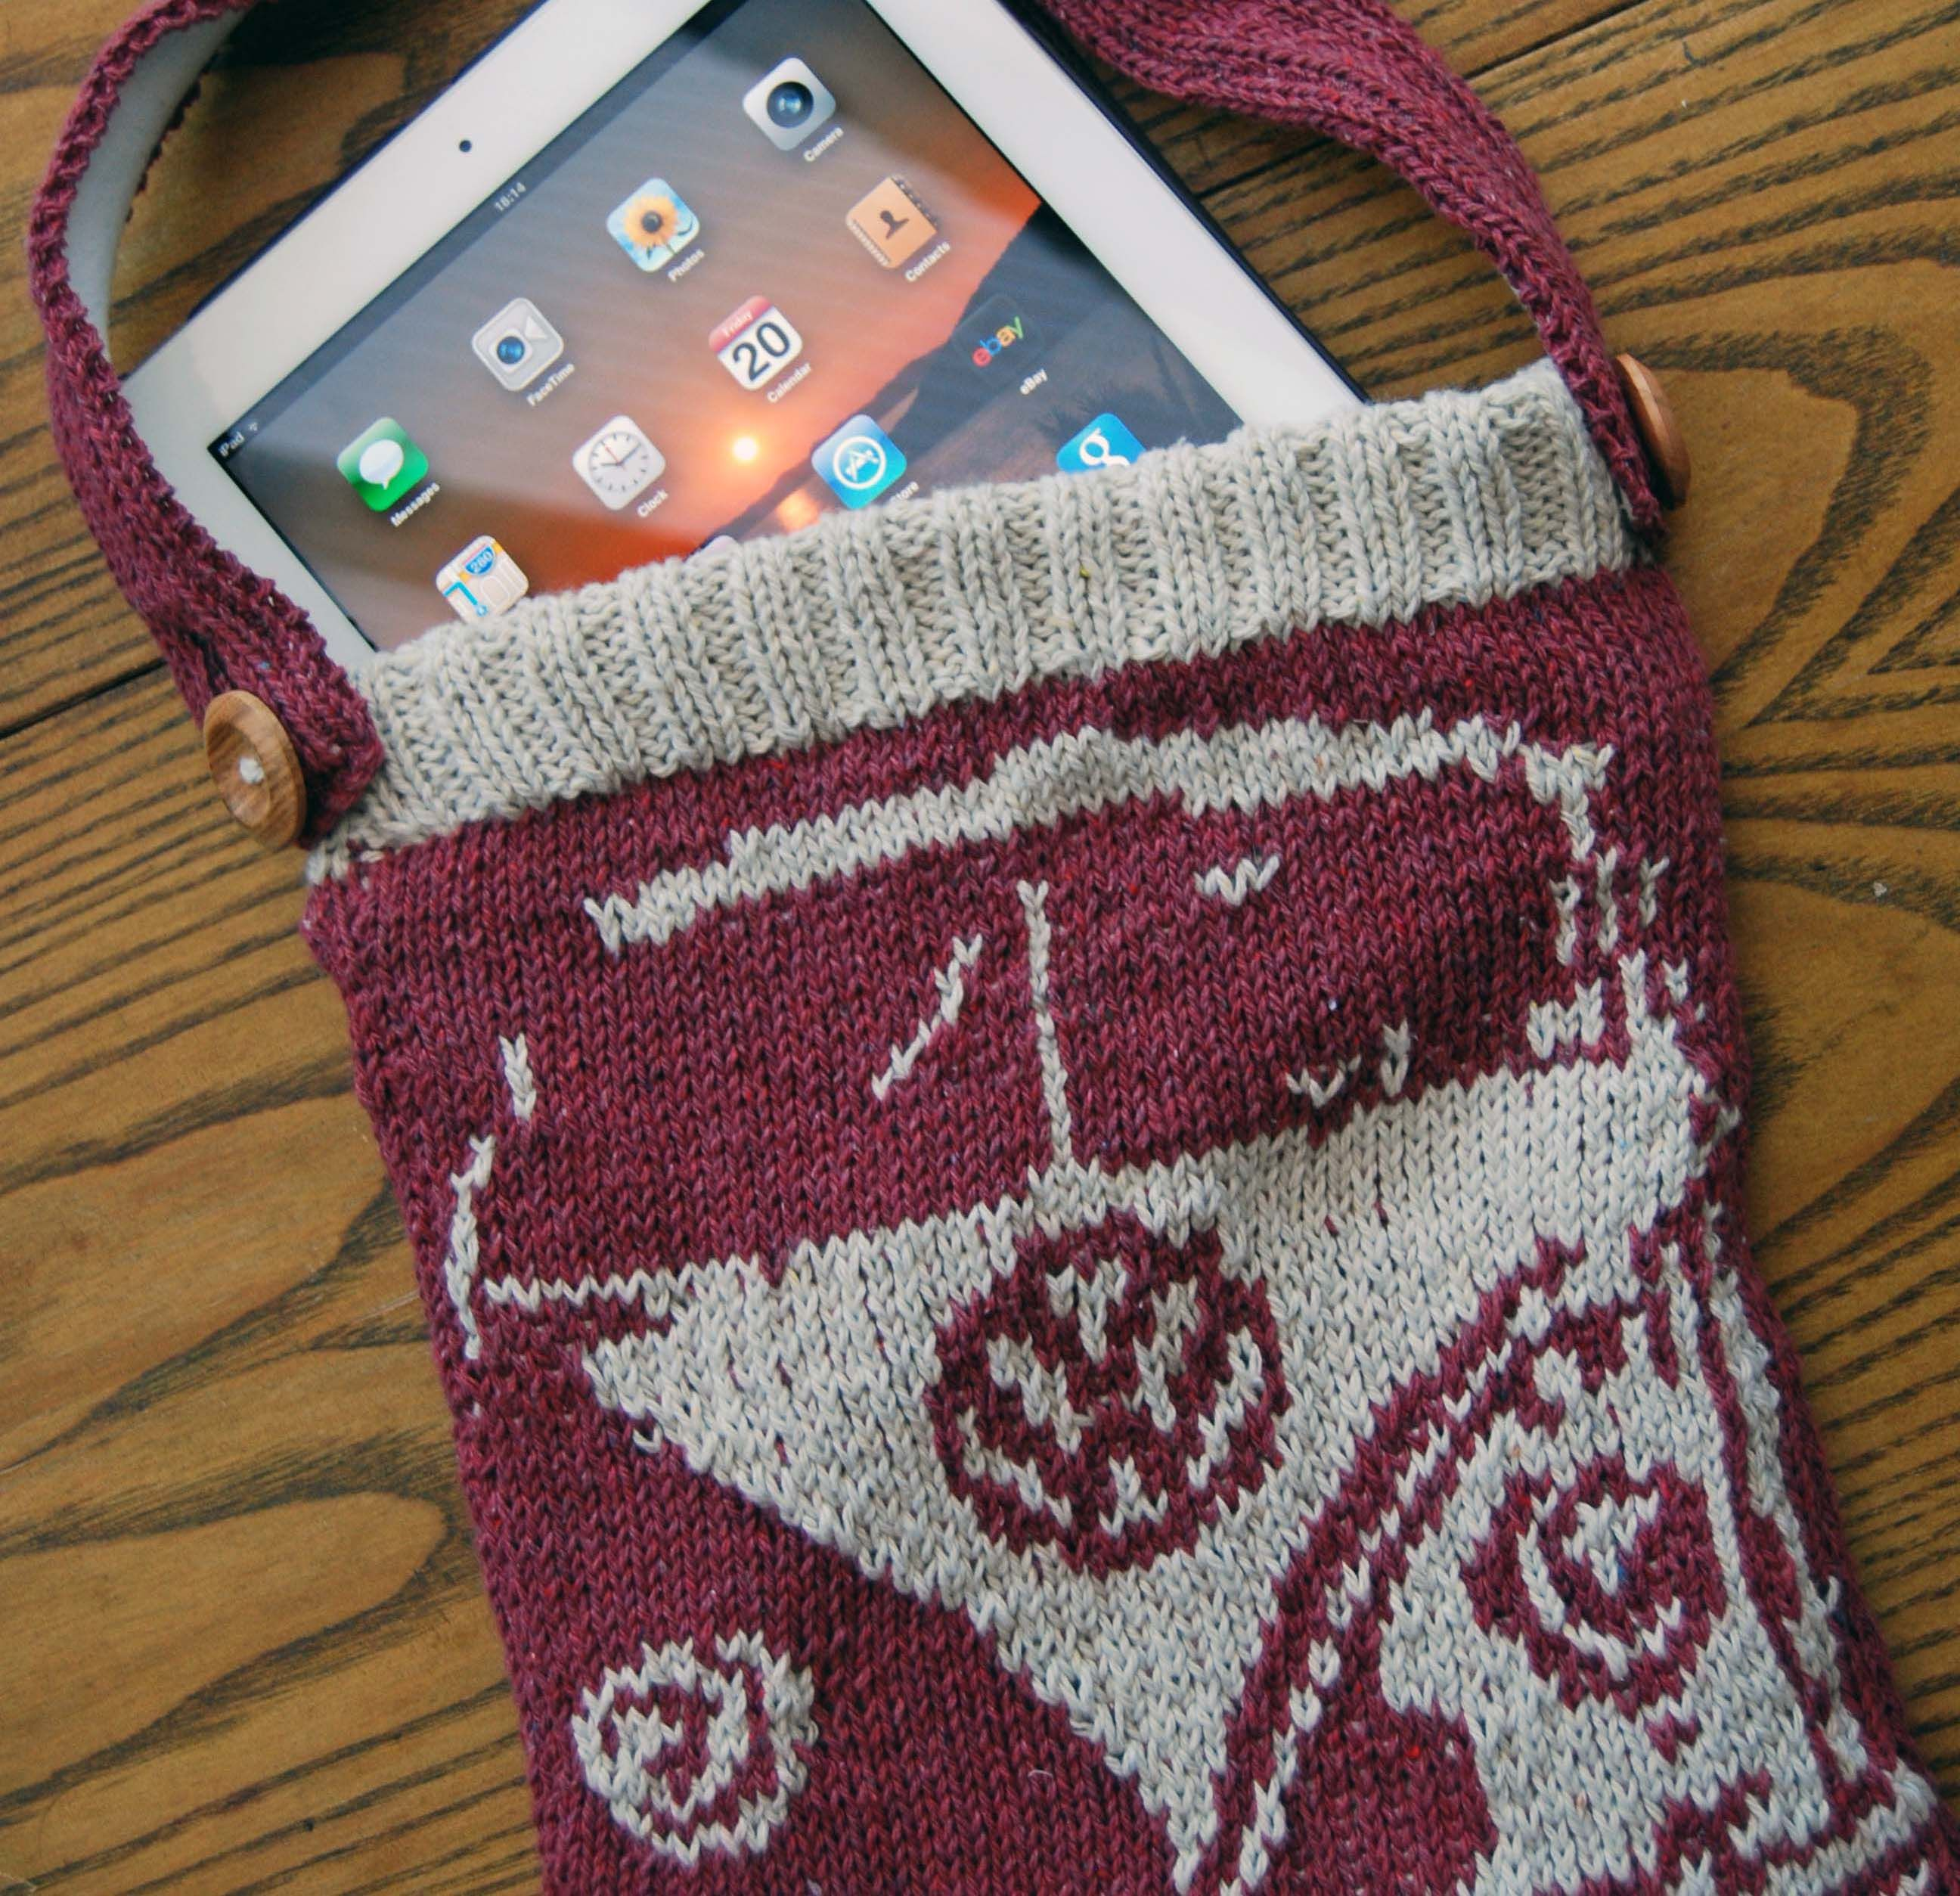 Splitty-Bag-with-ipad-square-image.jpg 2,592×2,507 pixels | Knitting ...